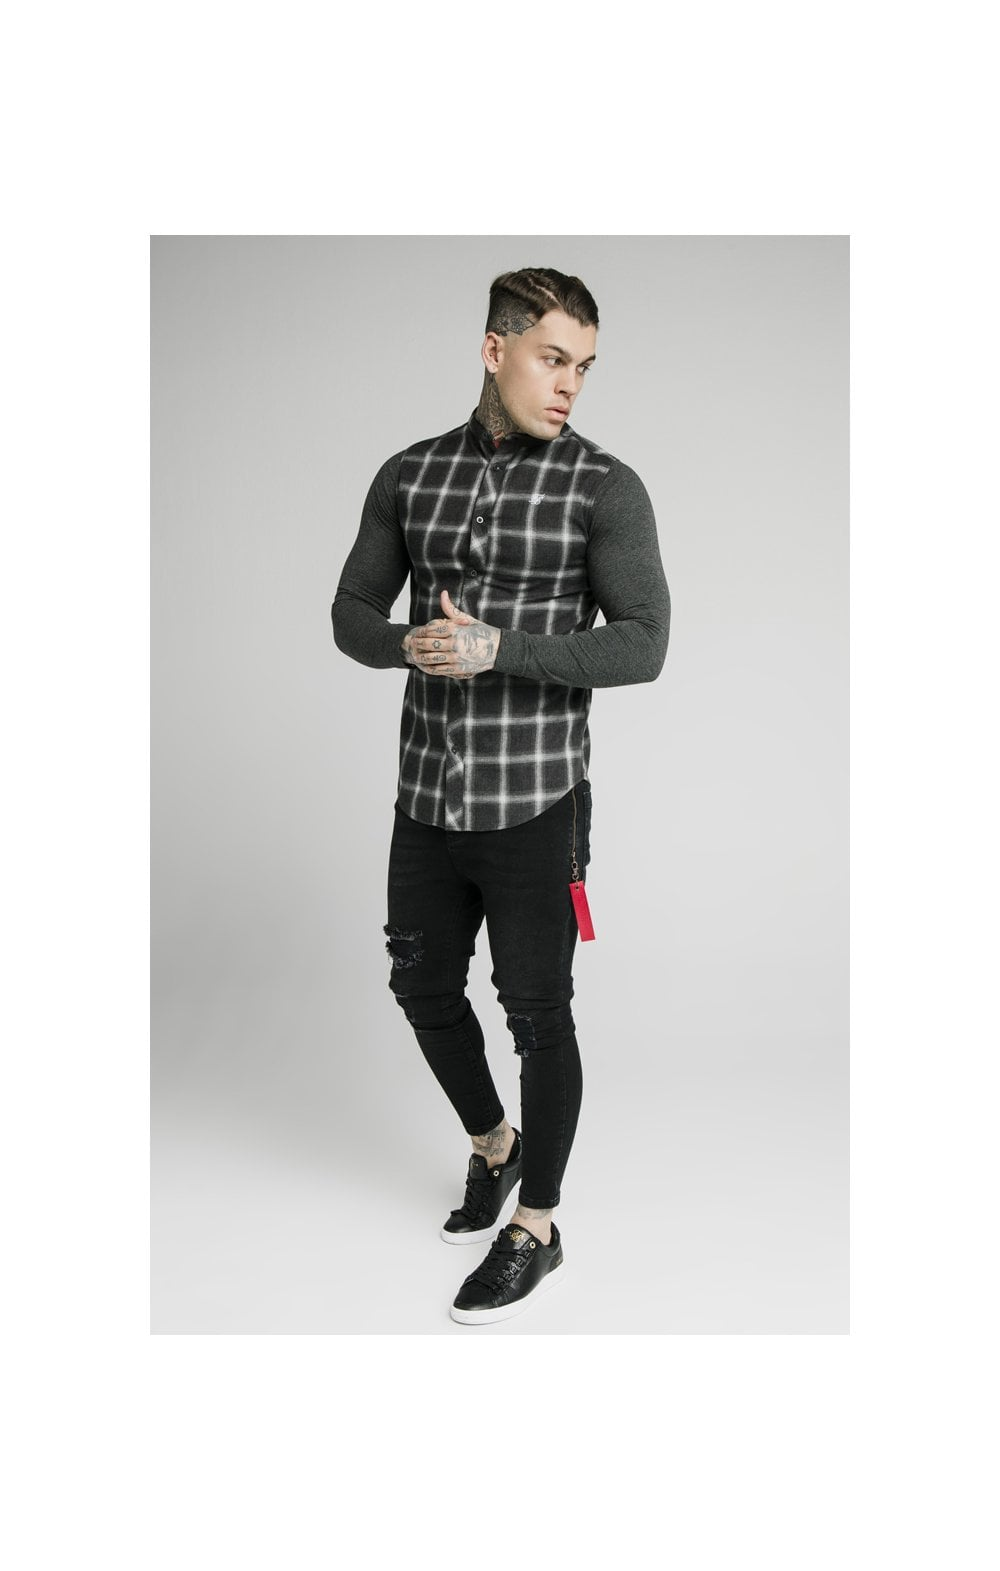 SikSilk L/S Flannel Check Grandad Shirt - Charcoal (4)